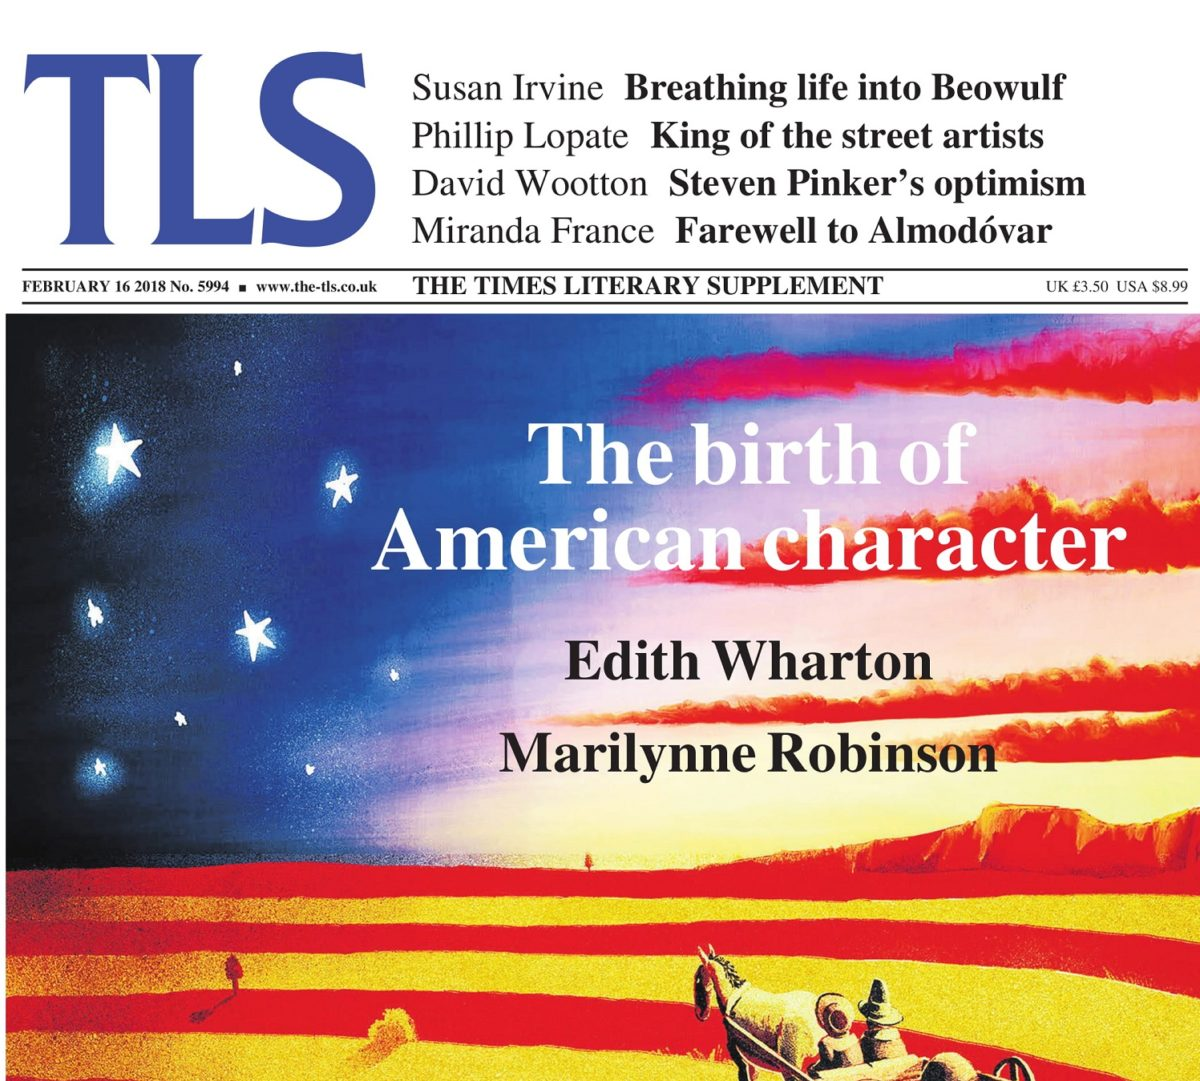 Magazine ABCs: Times Literary Supplement is fastest growing weekly as circulation climbs by a fifth year-on-year